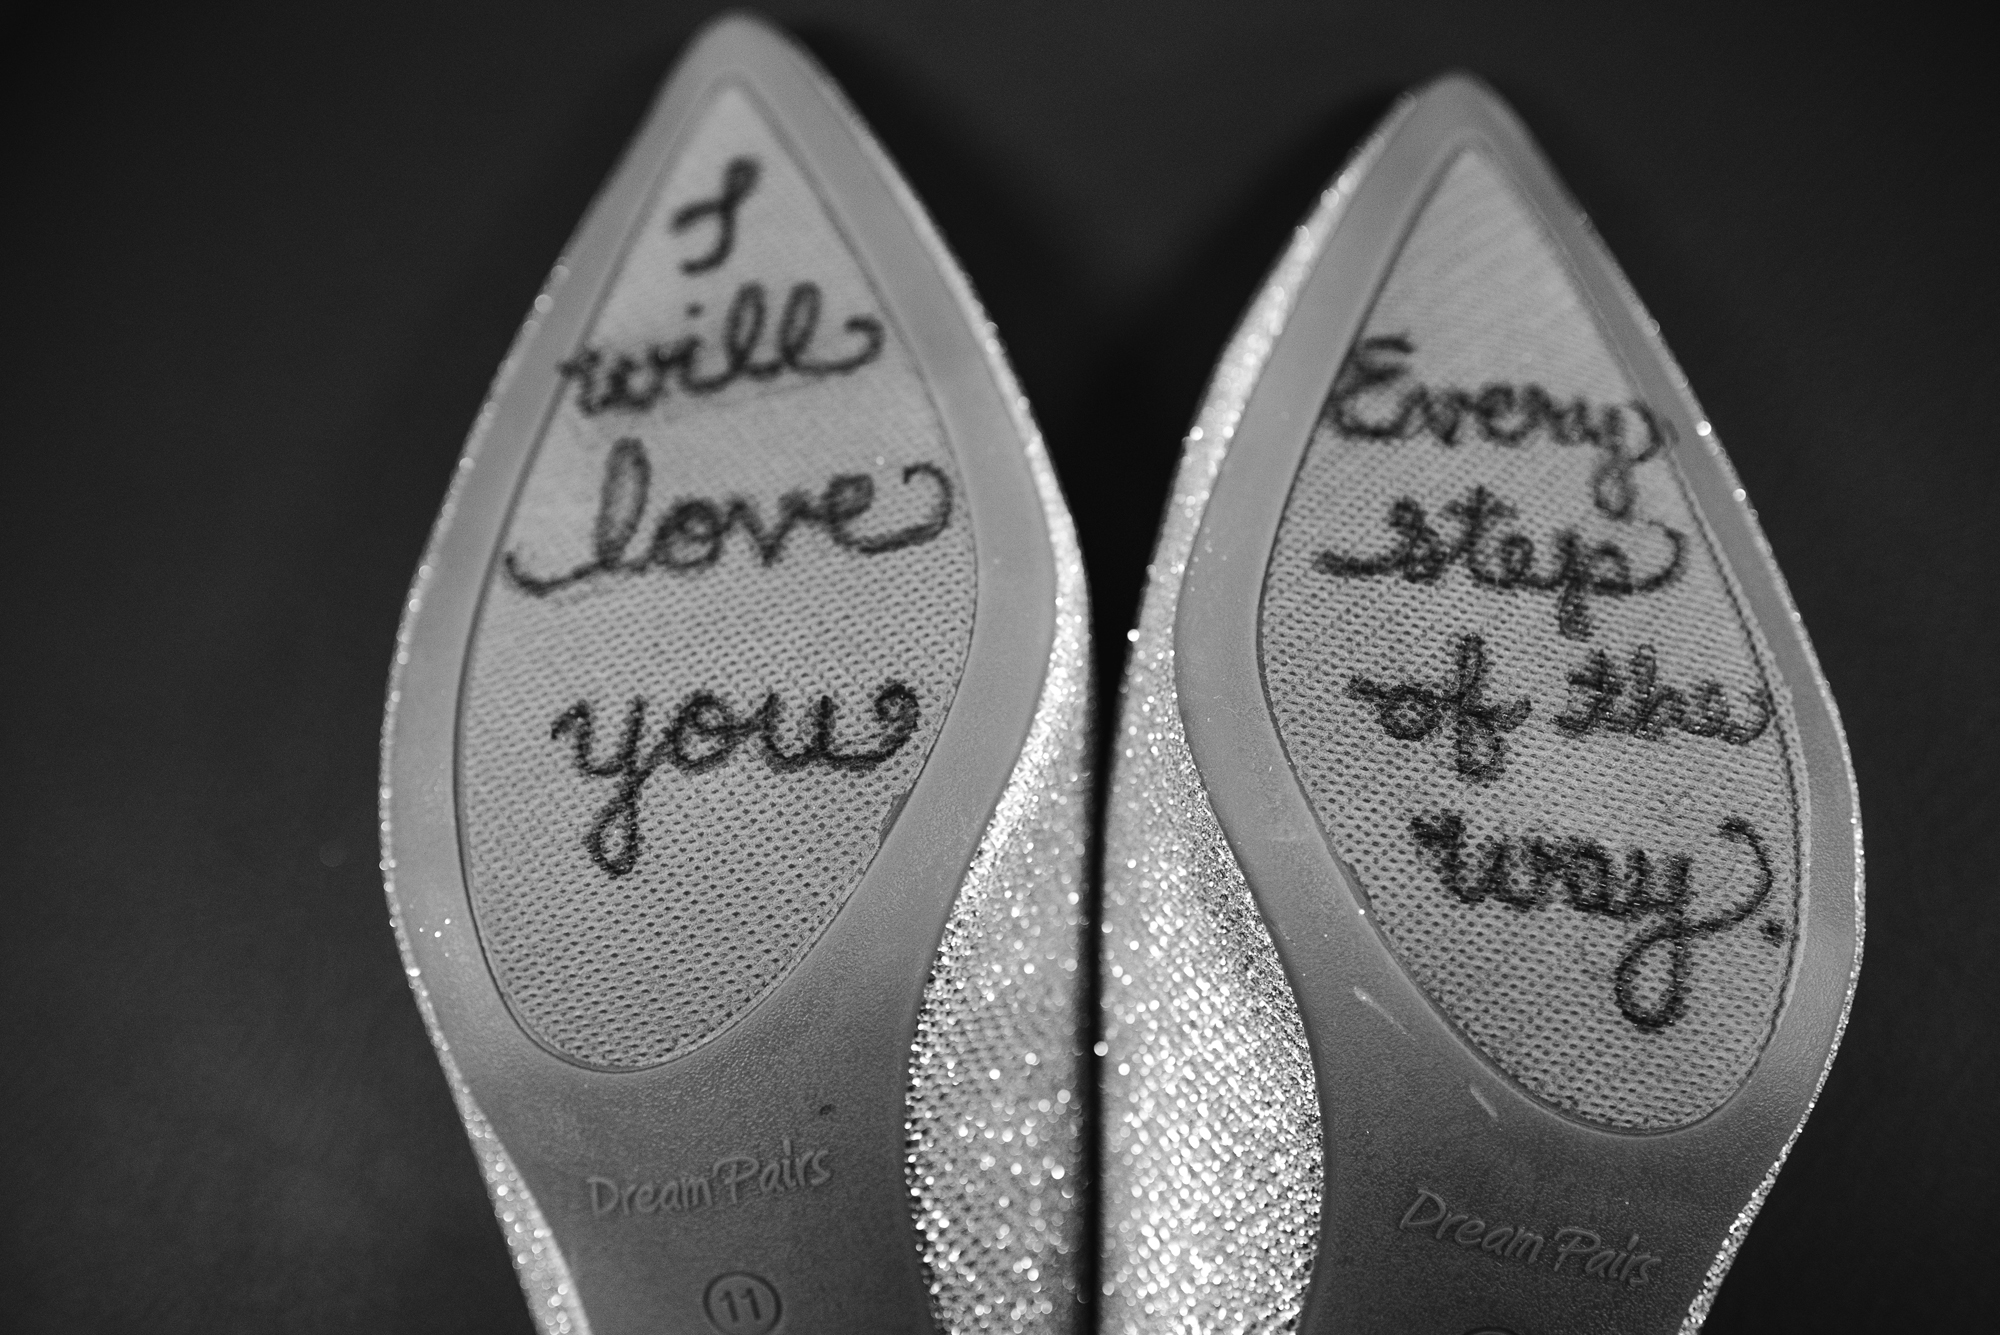 Brides shoes that have a saying on them